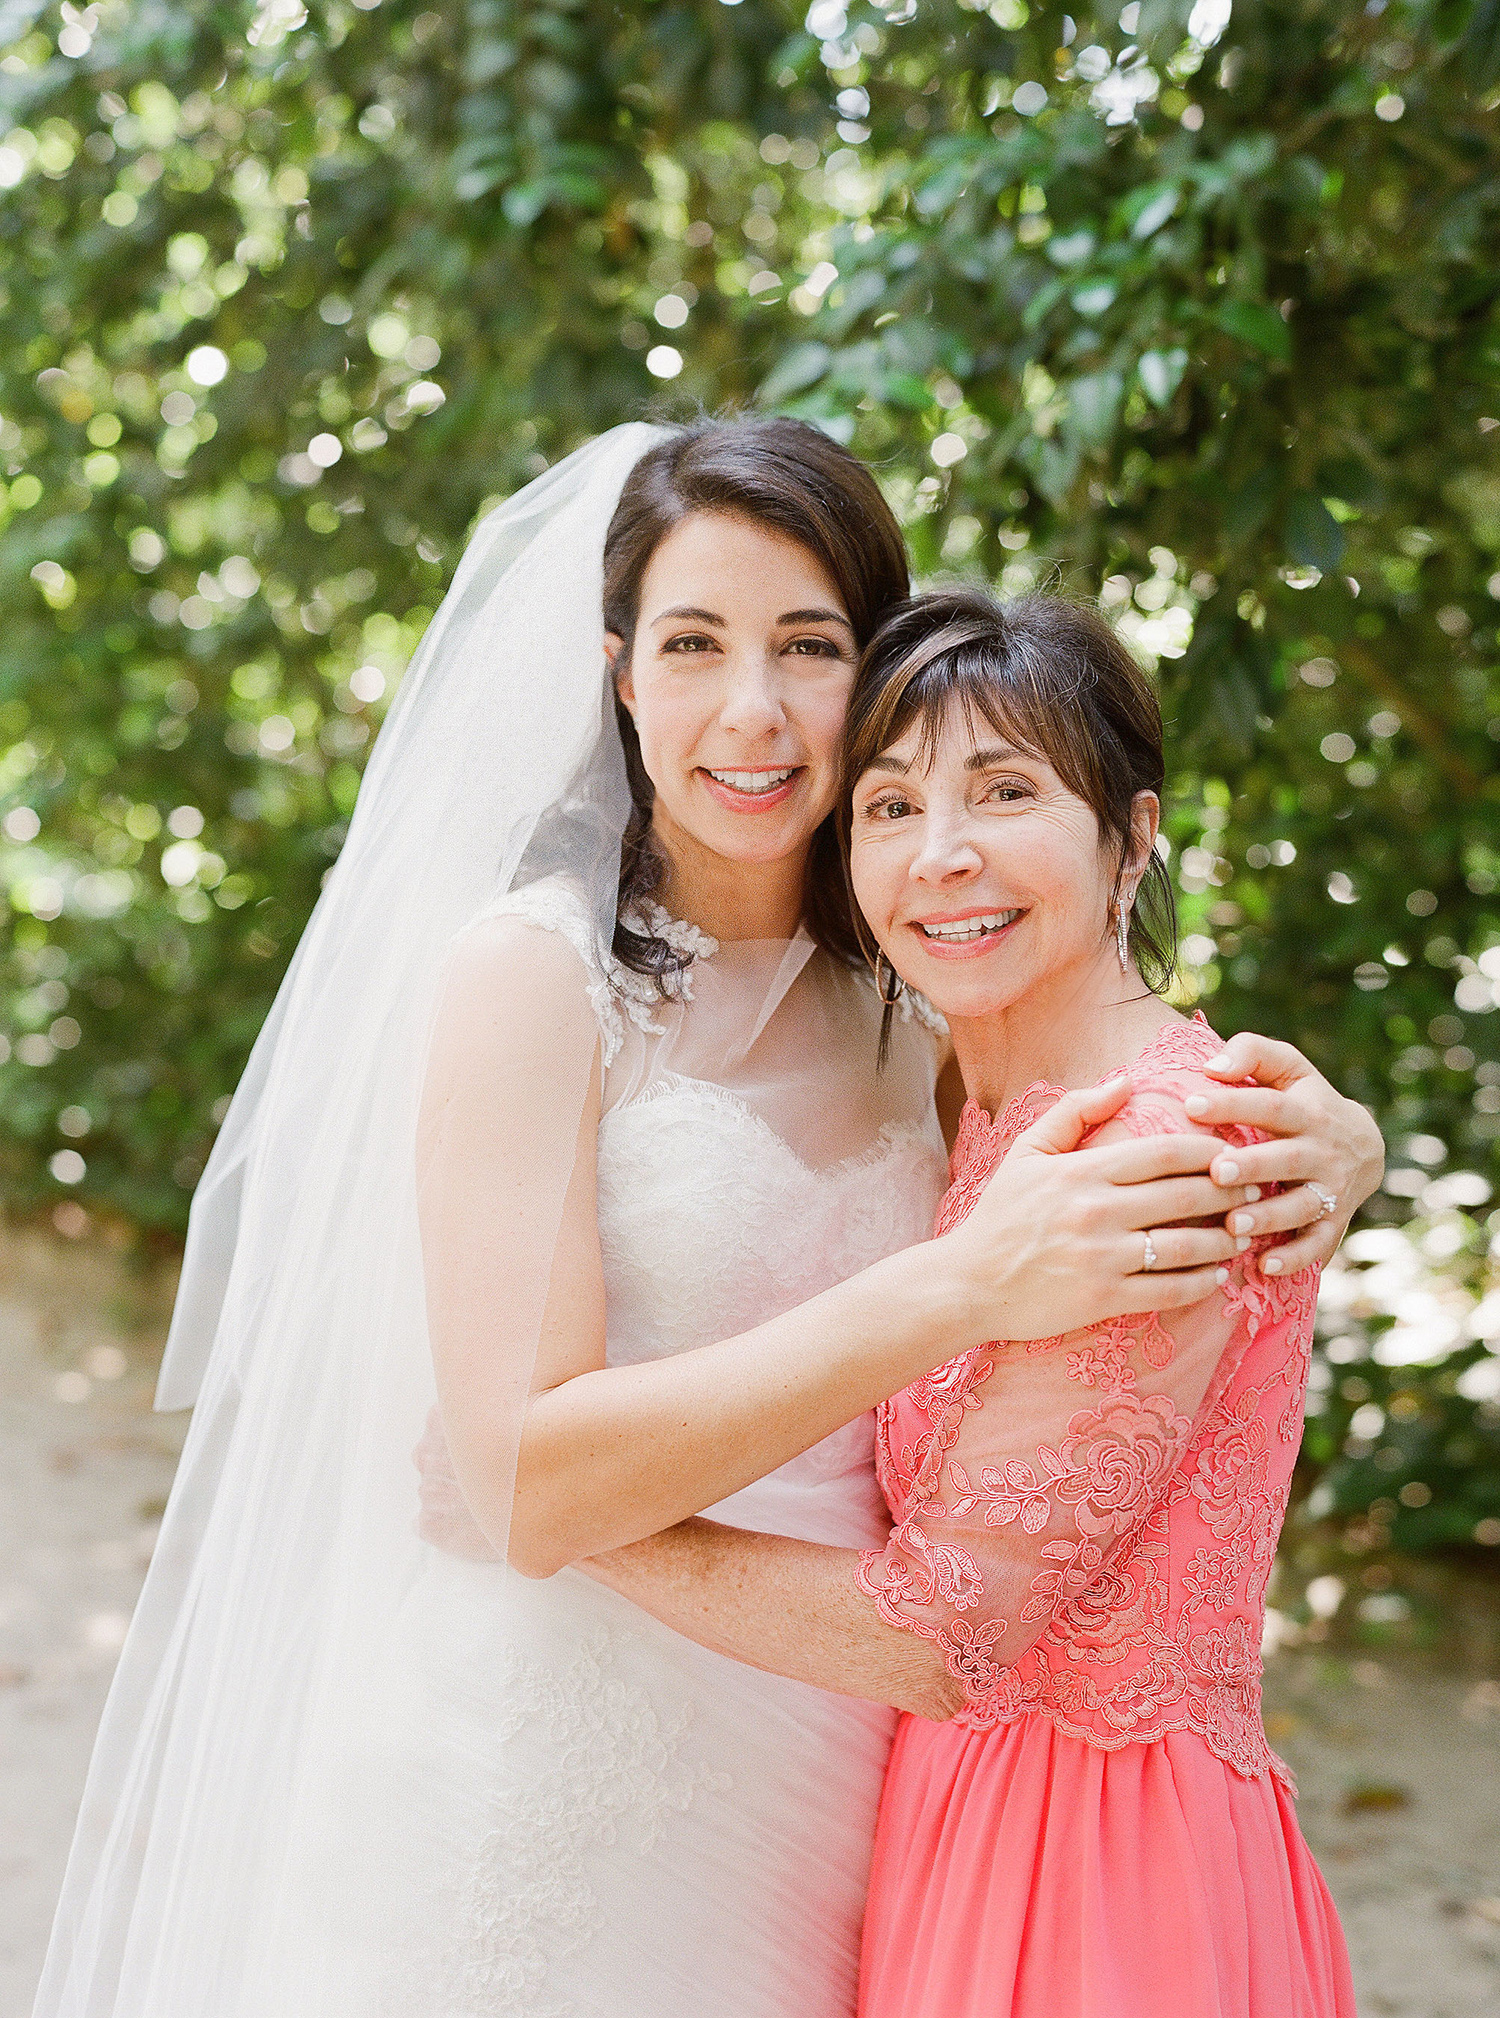 3 Reasons Why the Mother of the Bride Should Schedule a Pre-Wedding Makeup Trial